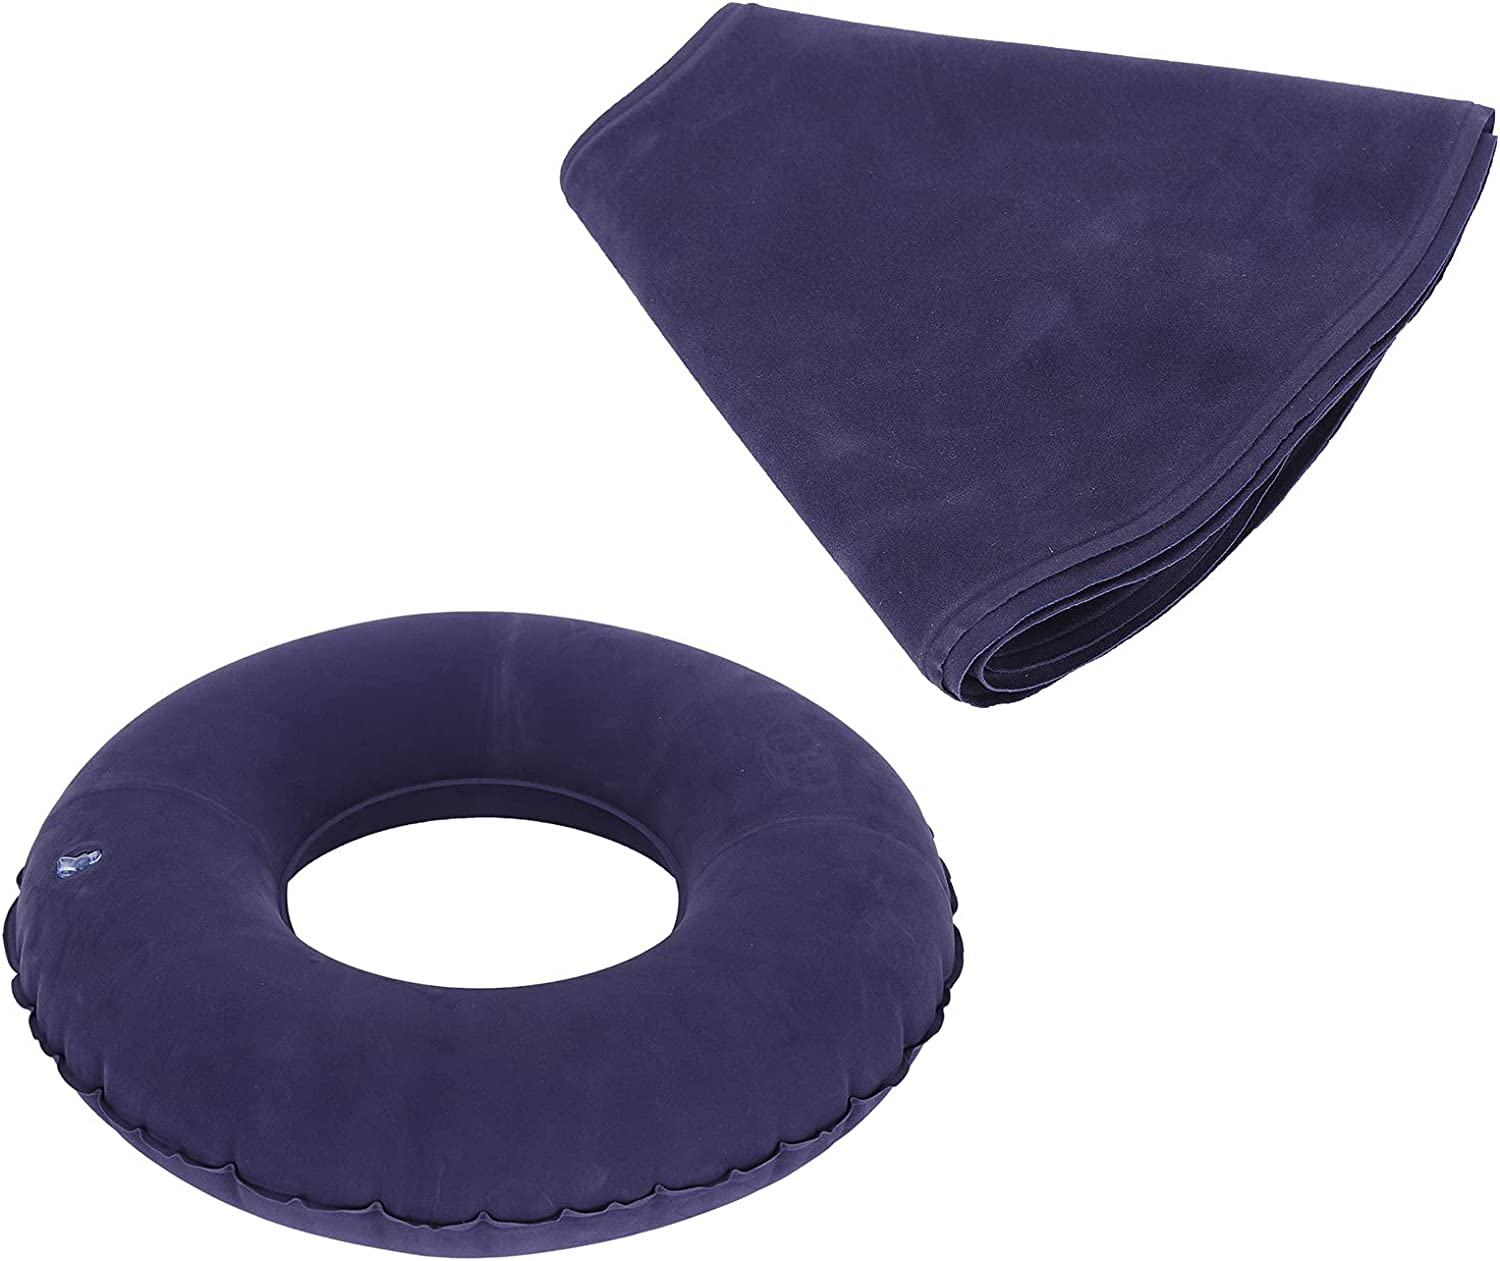 Donut Cushion Easy to Inflate Air Prevent Hemorrhoi Leakage and Max 71% Max 82% OFF OFF